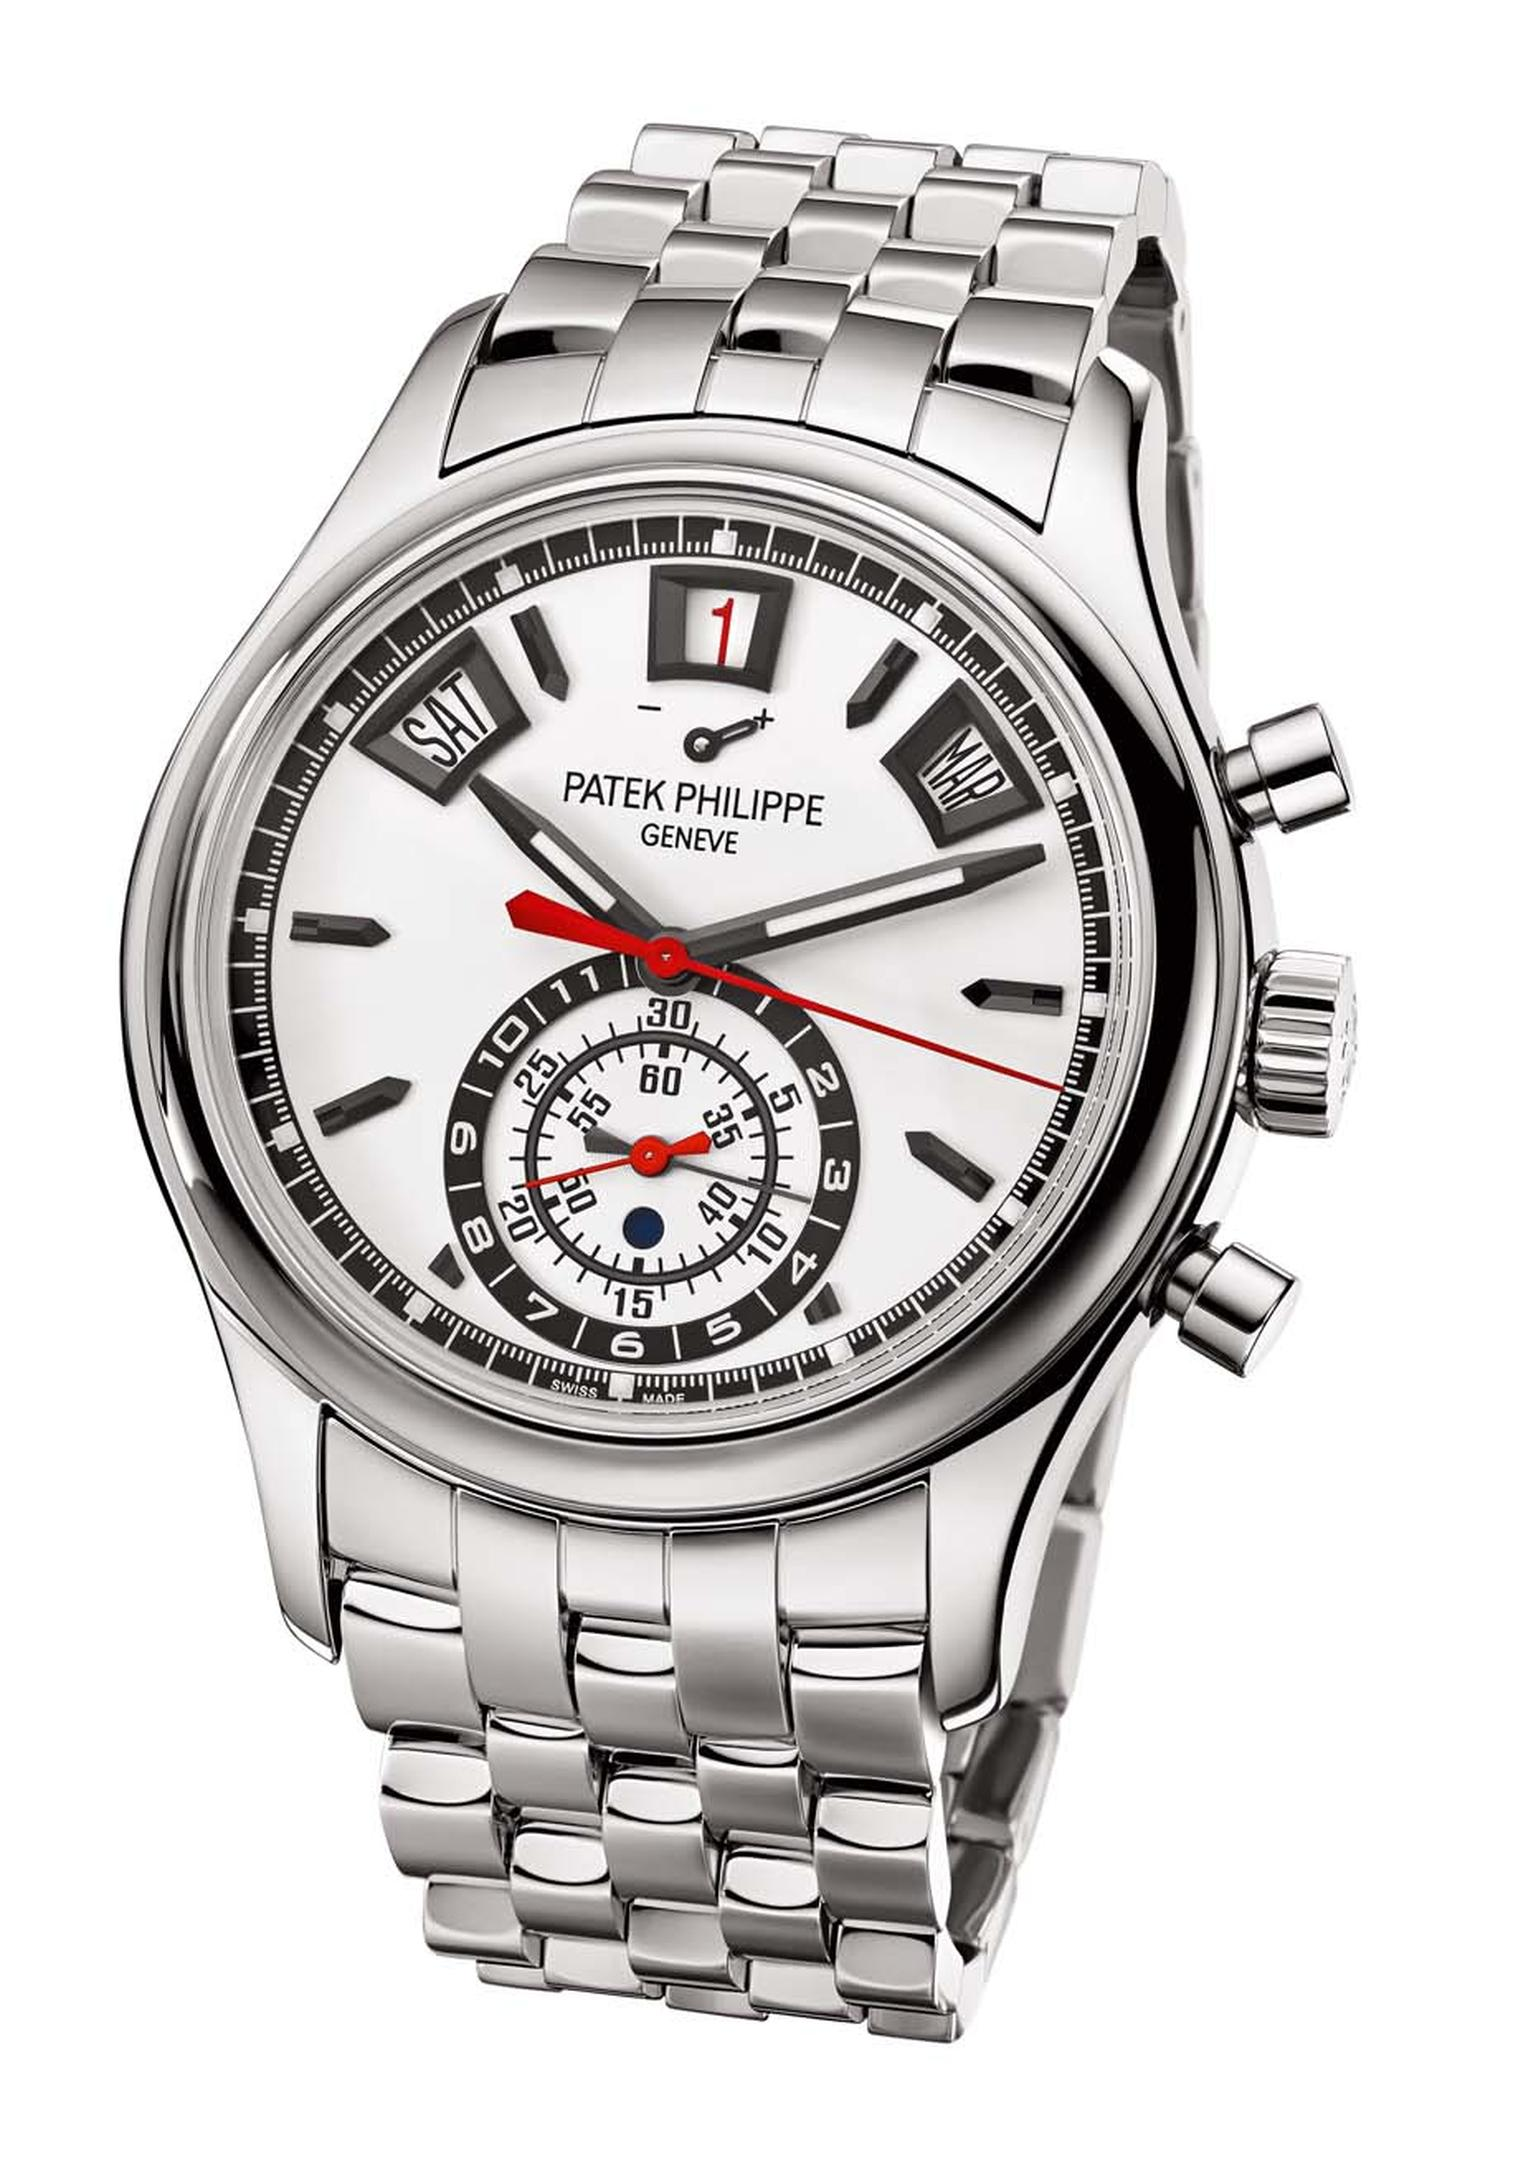 Patek Philippe's new Ref. 5960/1A Annual Calendar Chronograph watch in stainless steel.